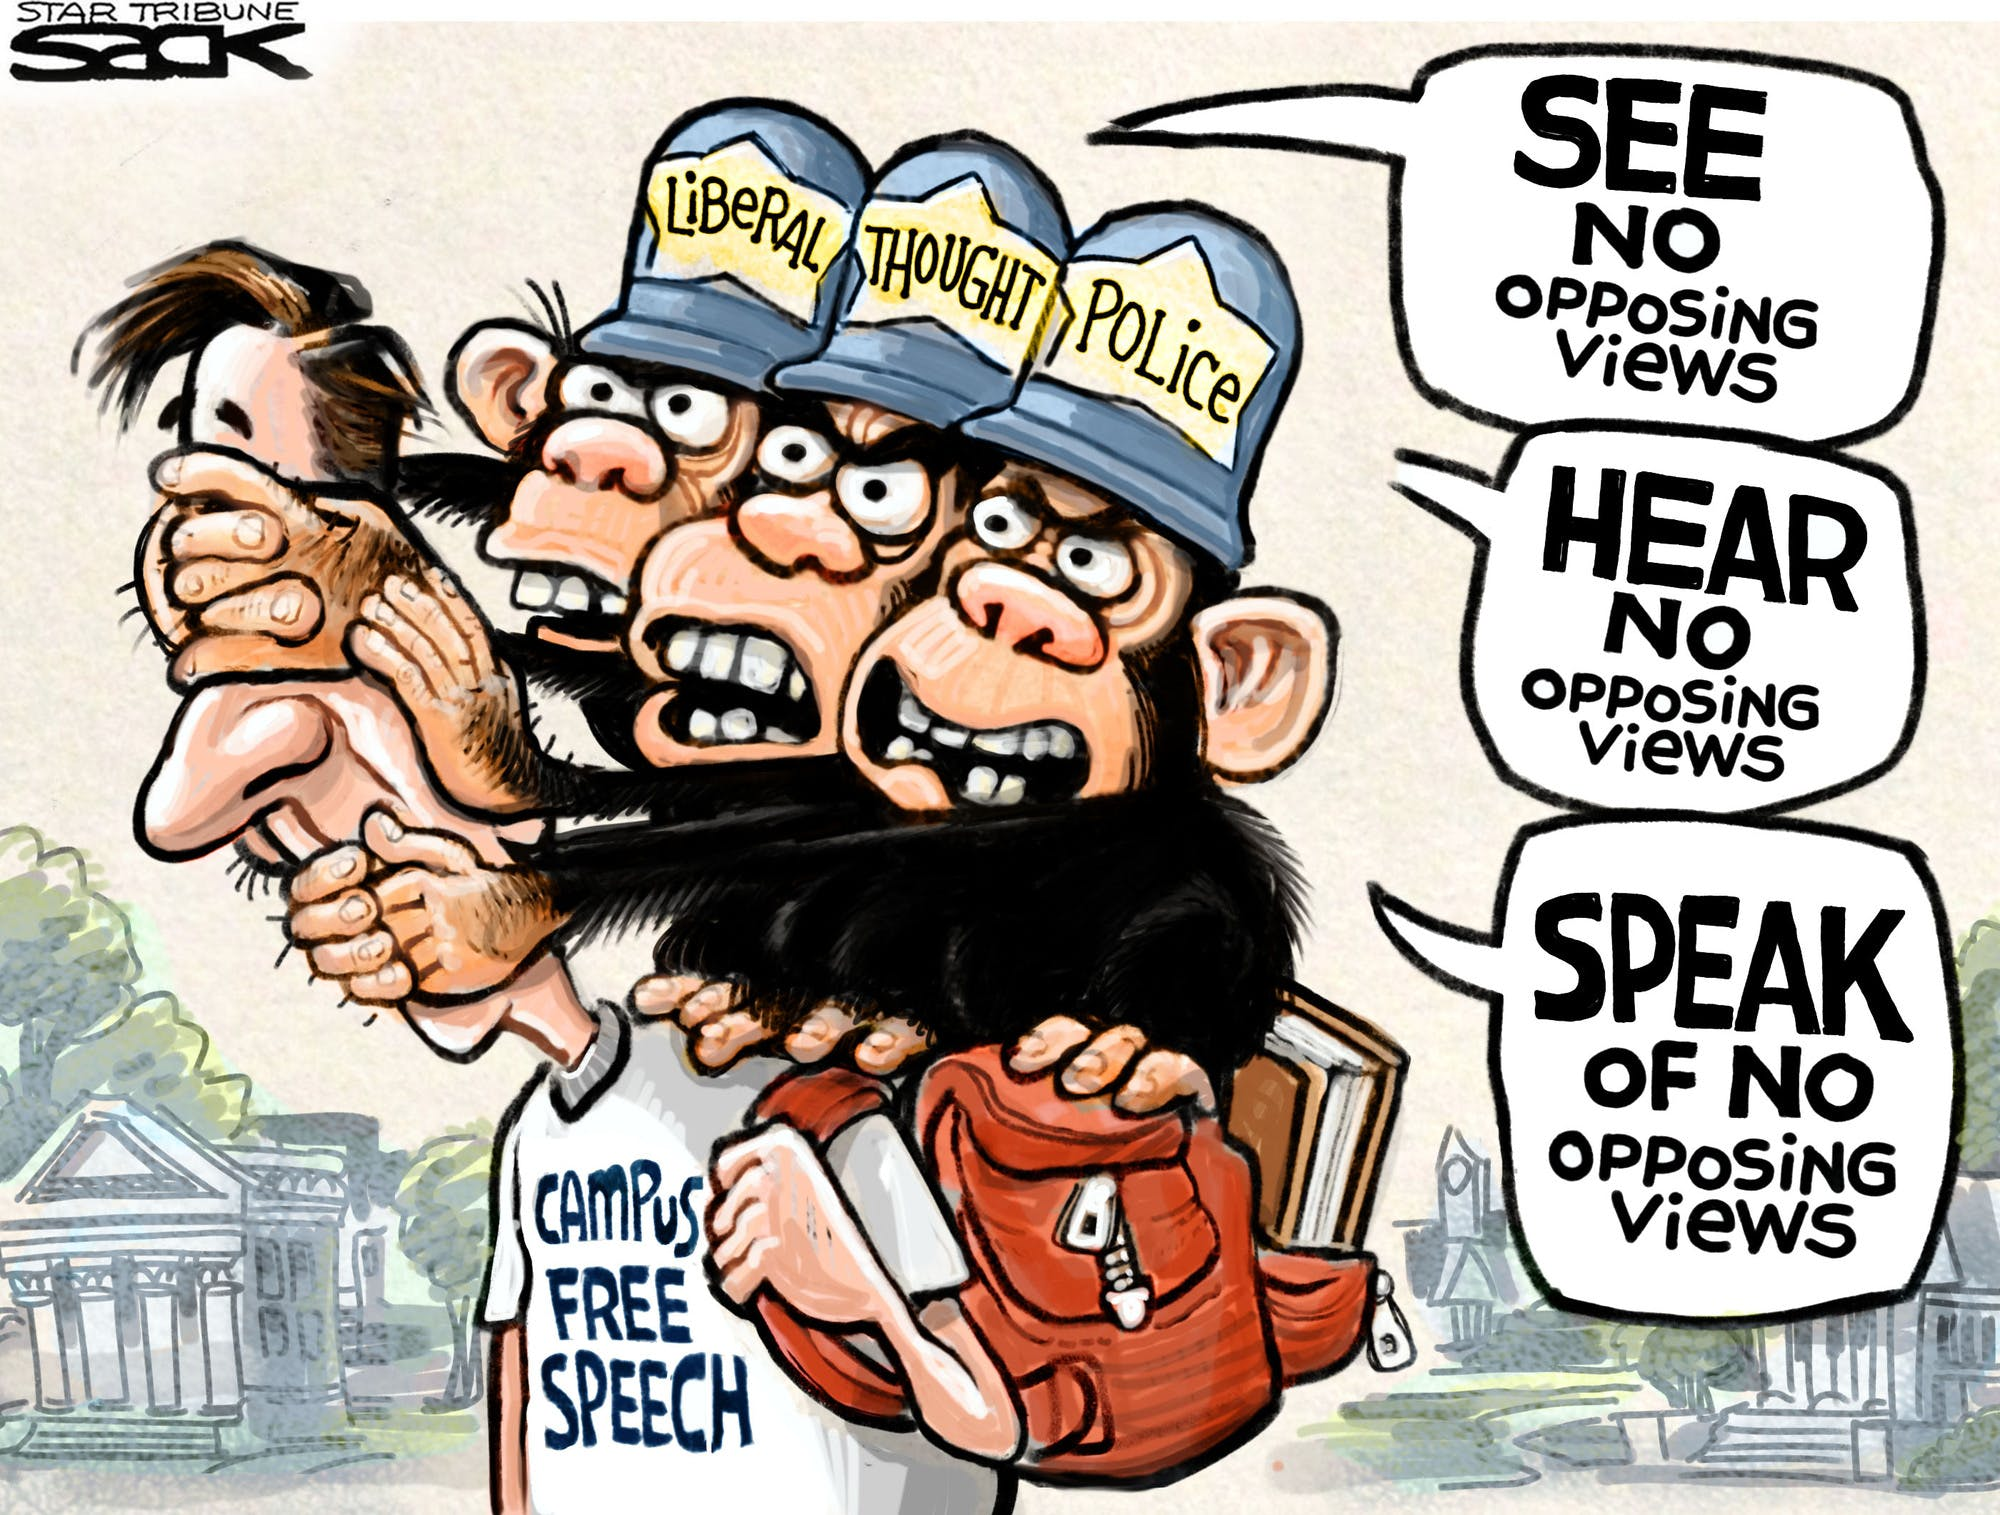 Please Go Elsewhere If You Are Triggered By Free Speech The Free Exchange Of Ideas Or People Who Express And Defend Ideas Or Opinions That Differ From